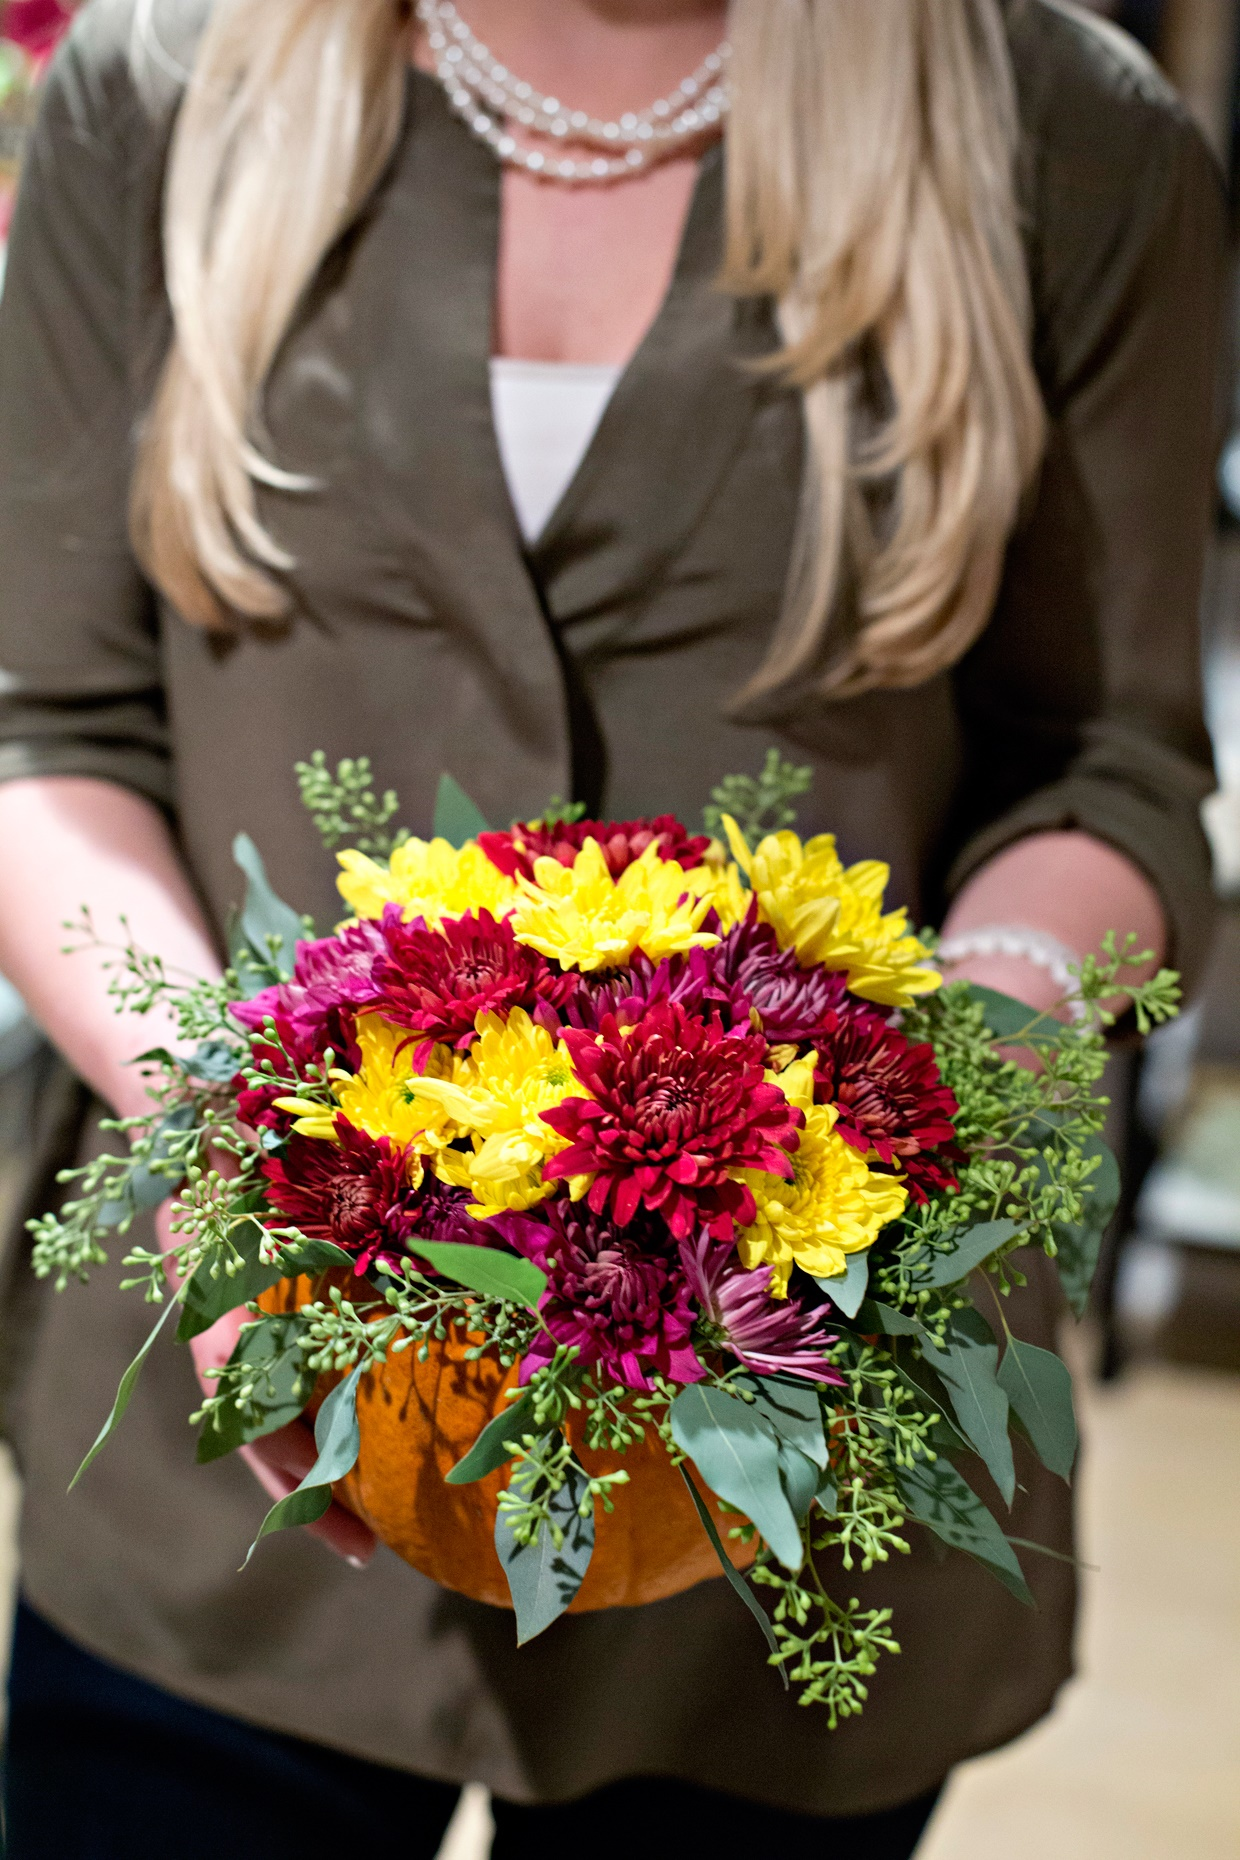 How to create the perfect fall hostess gift the everyday hostess these adorable diy pumpkin flower arrangements are the perfect fall hostess gift incorporating the number one fall essential a pumpkin of course and solutioingenieria Choice Image